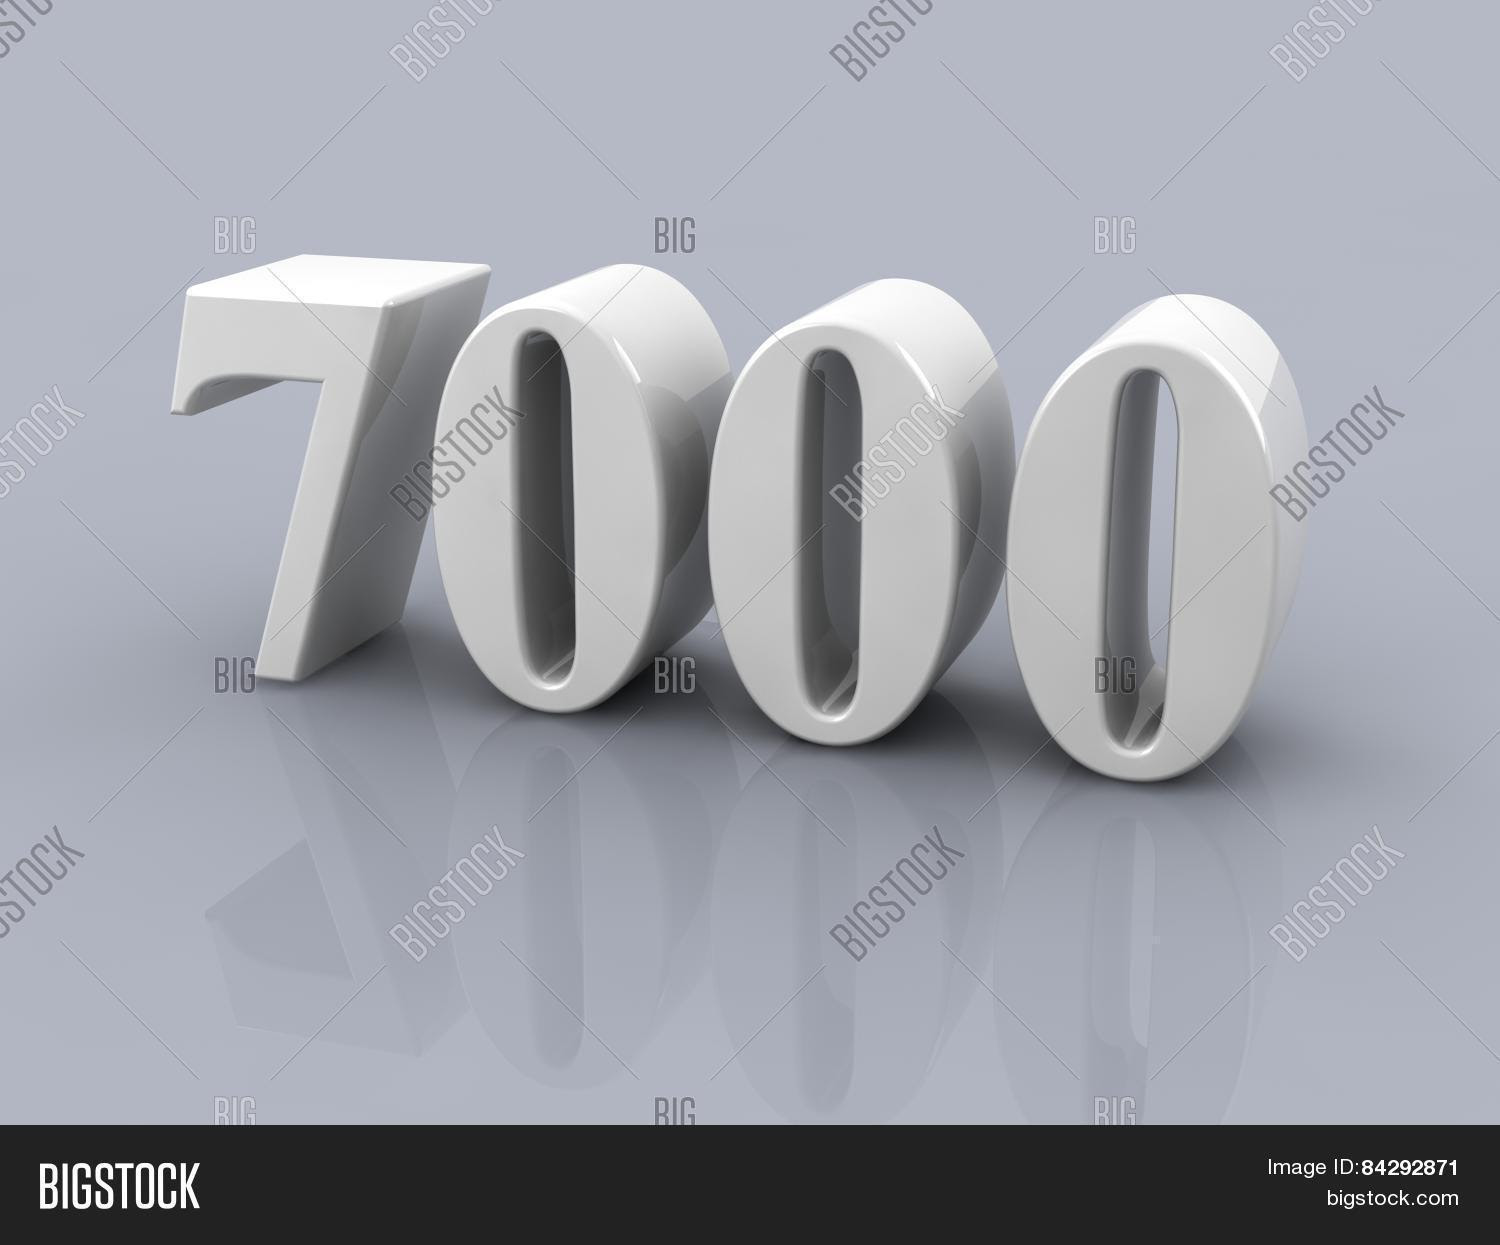 Number 7000 Gallery